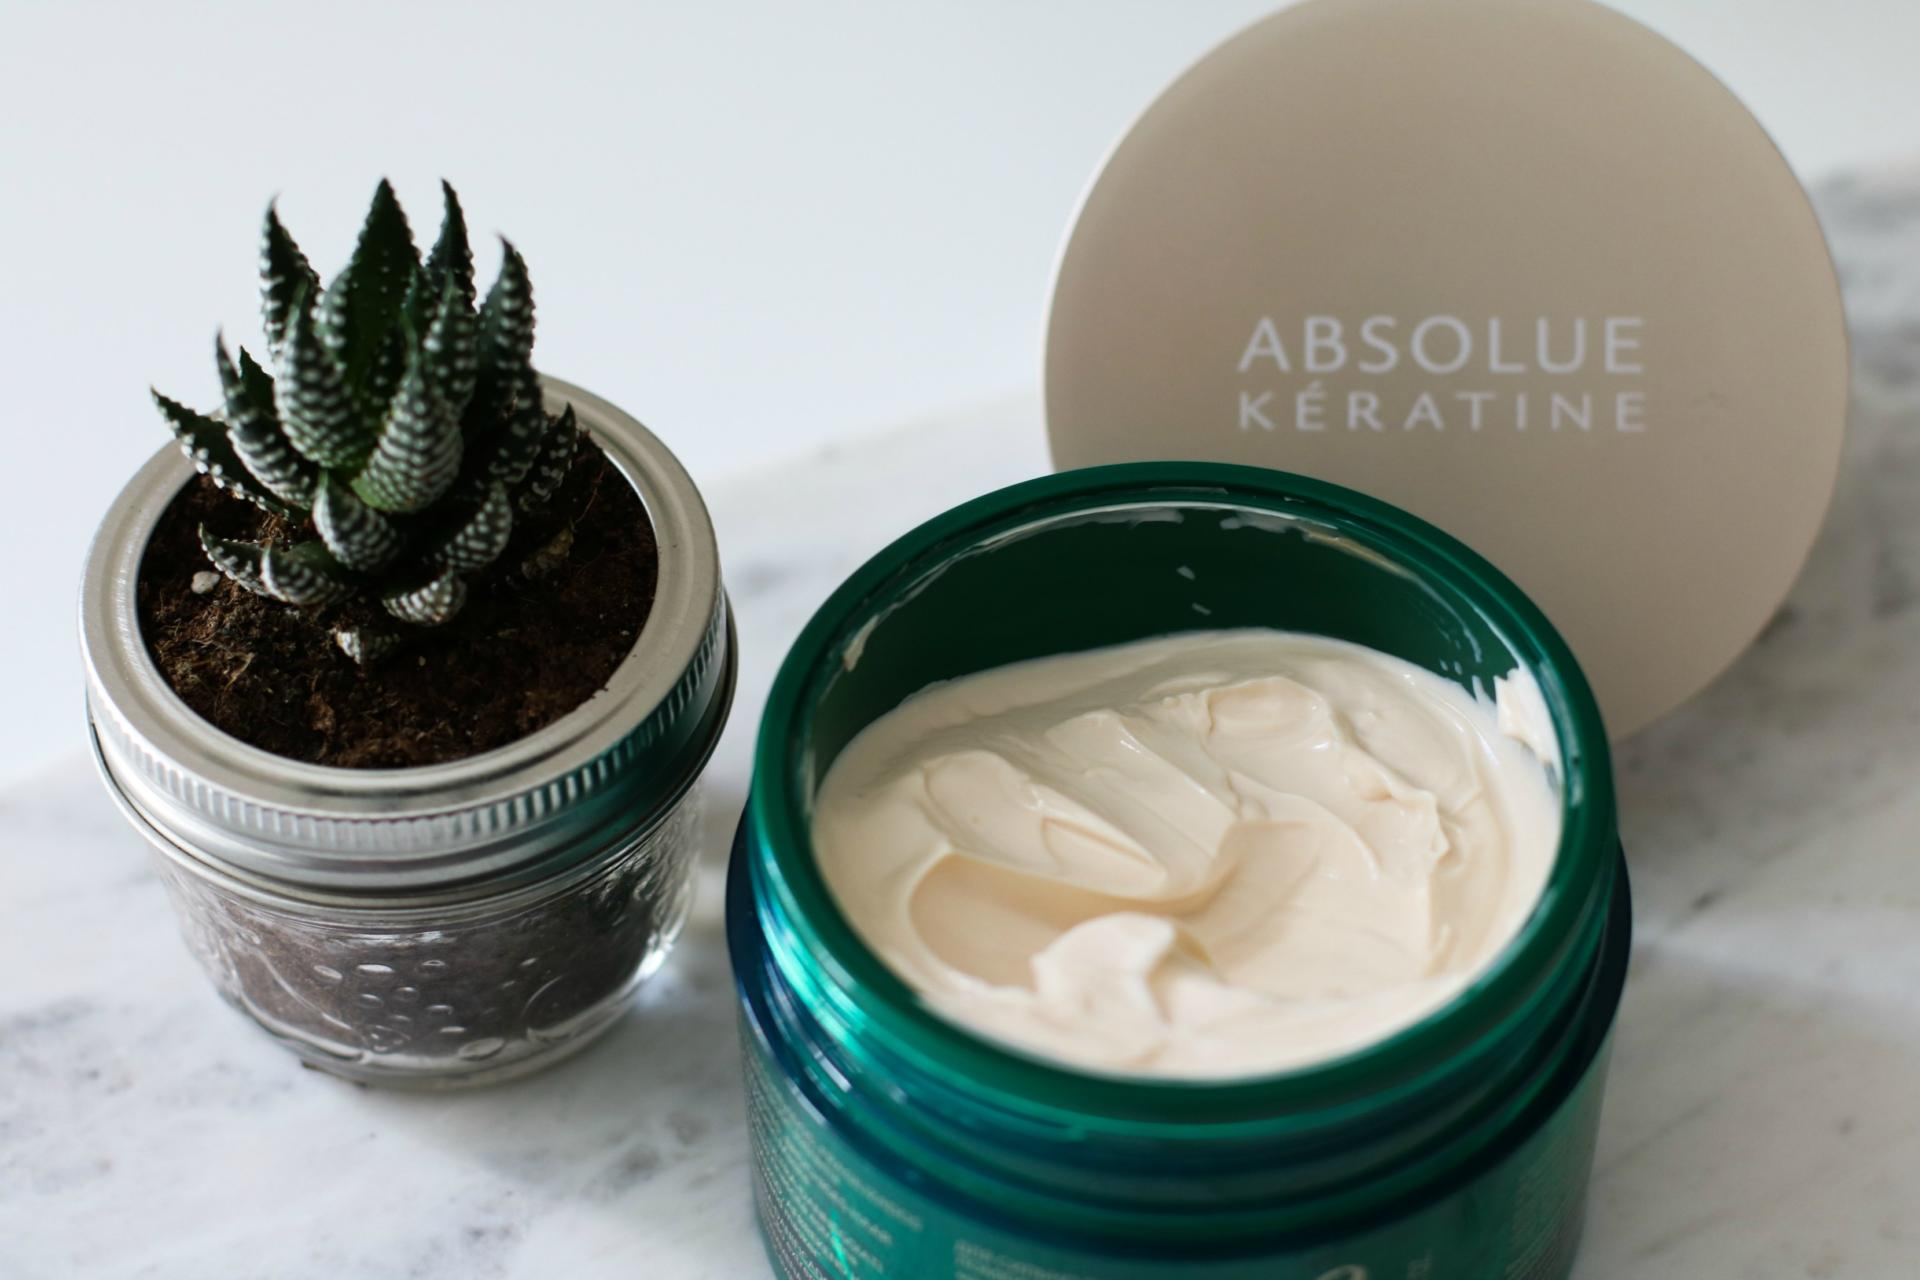 René Furterer Absolue Kératine Ultimate Renewal Mask